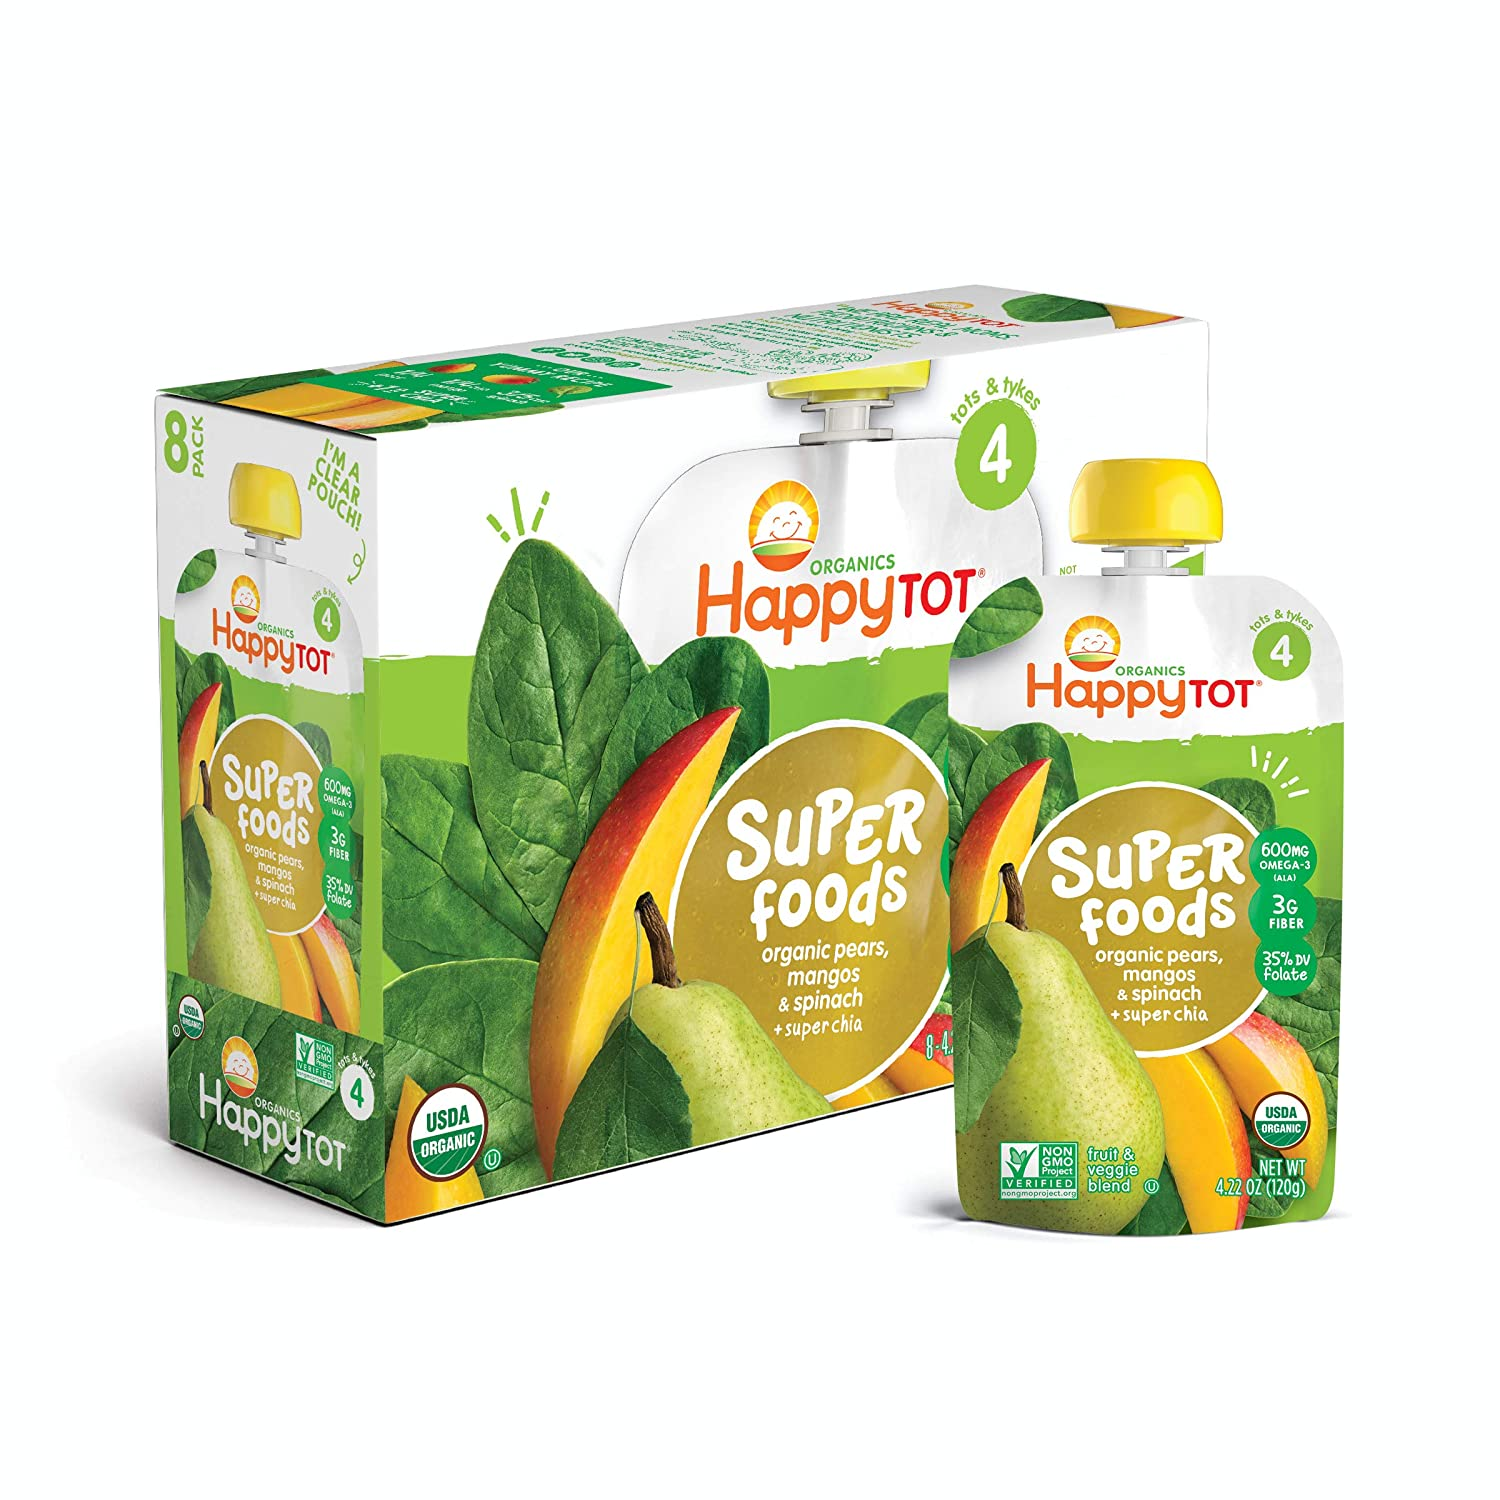 Happy Tot Organic Stage 4 Super Foods, Pears, Mangos and Spinach + Super Chia, 4.22 Ounce, (Pack of 8)